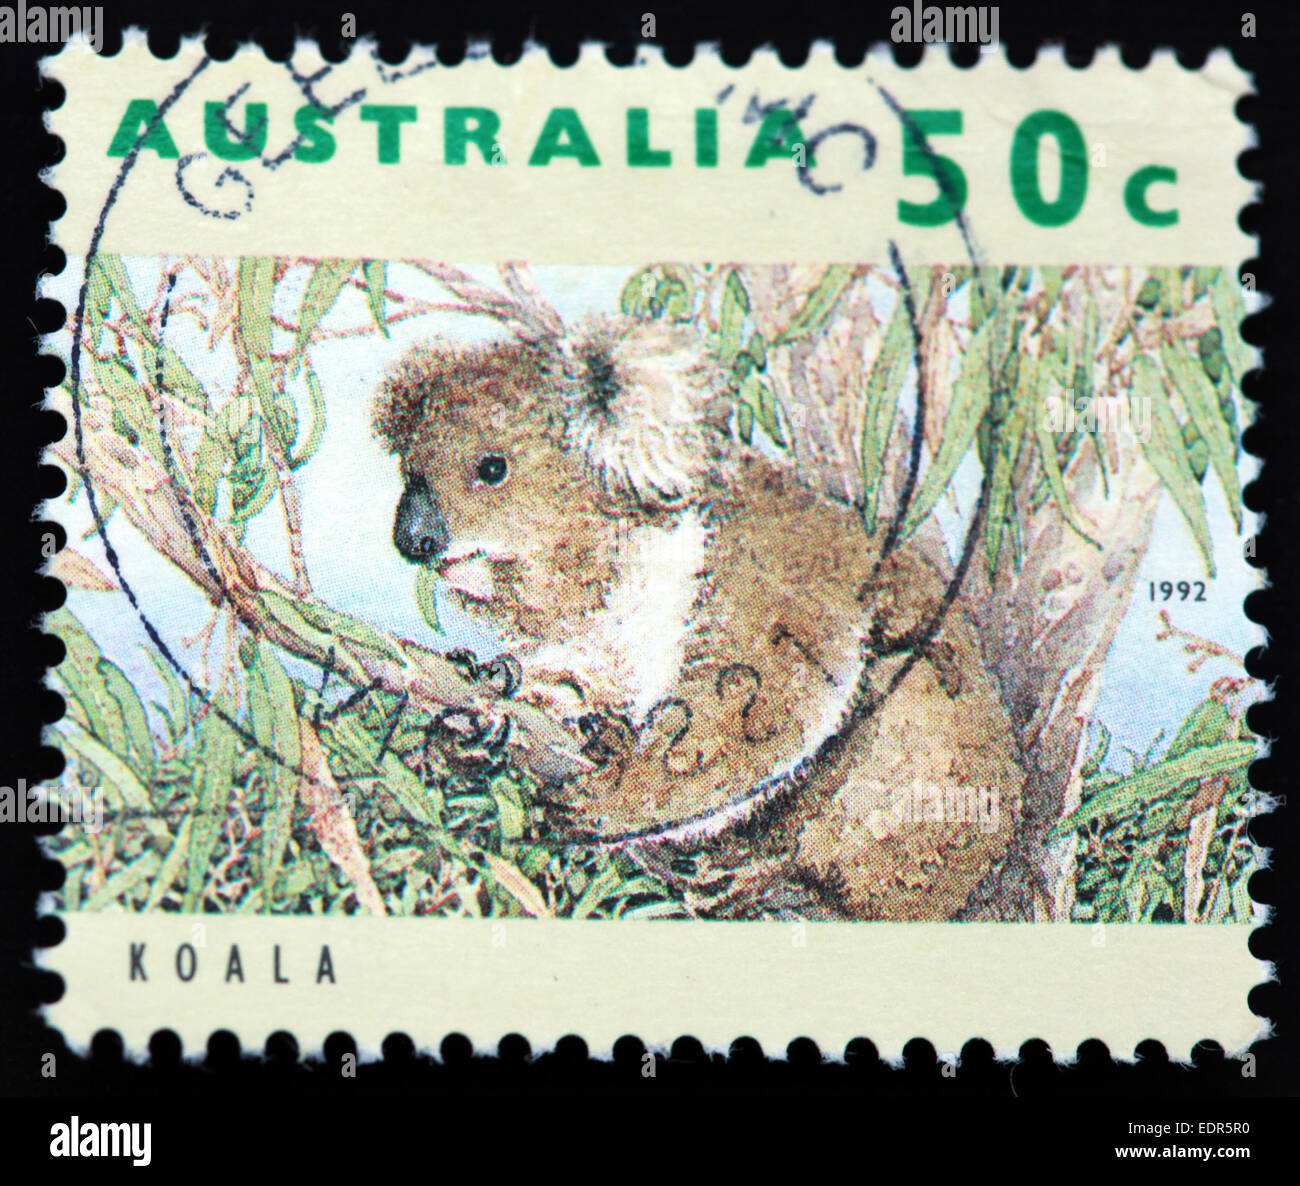 Used and postmarked Australia / Austrailian Stamp 50c Koala 1992 - Stock Image